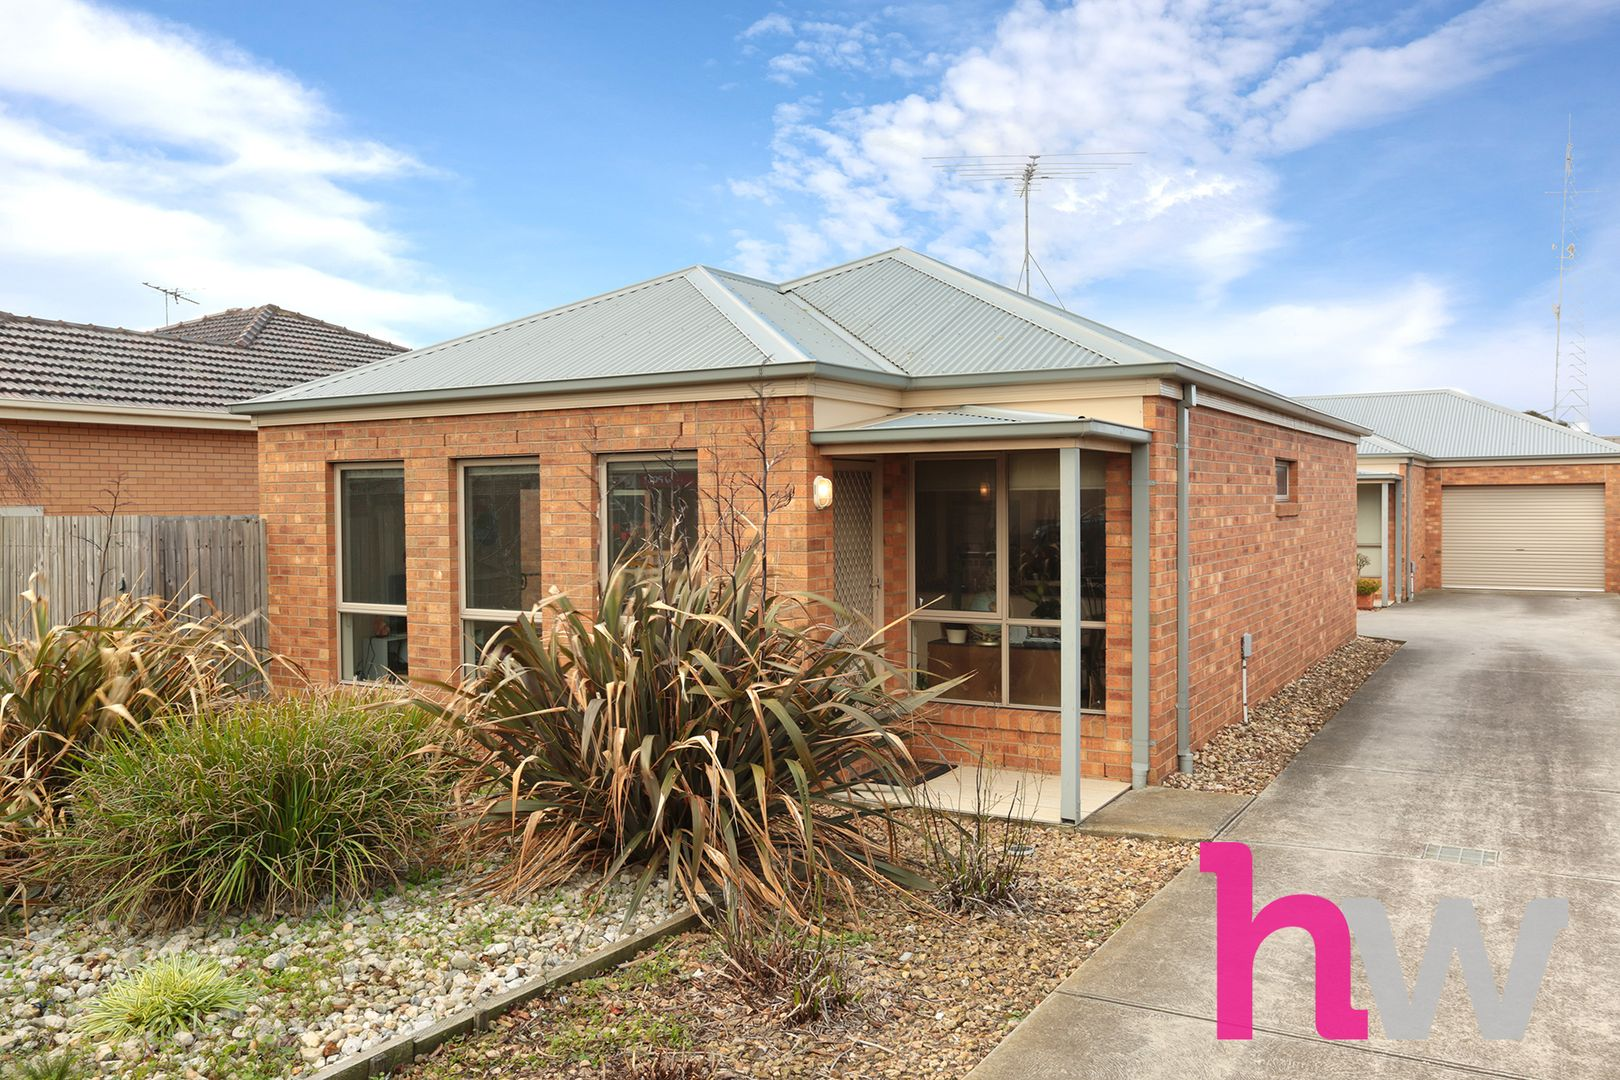 1/234 Thompson Road, North Geelong VIC 3215, Image 0